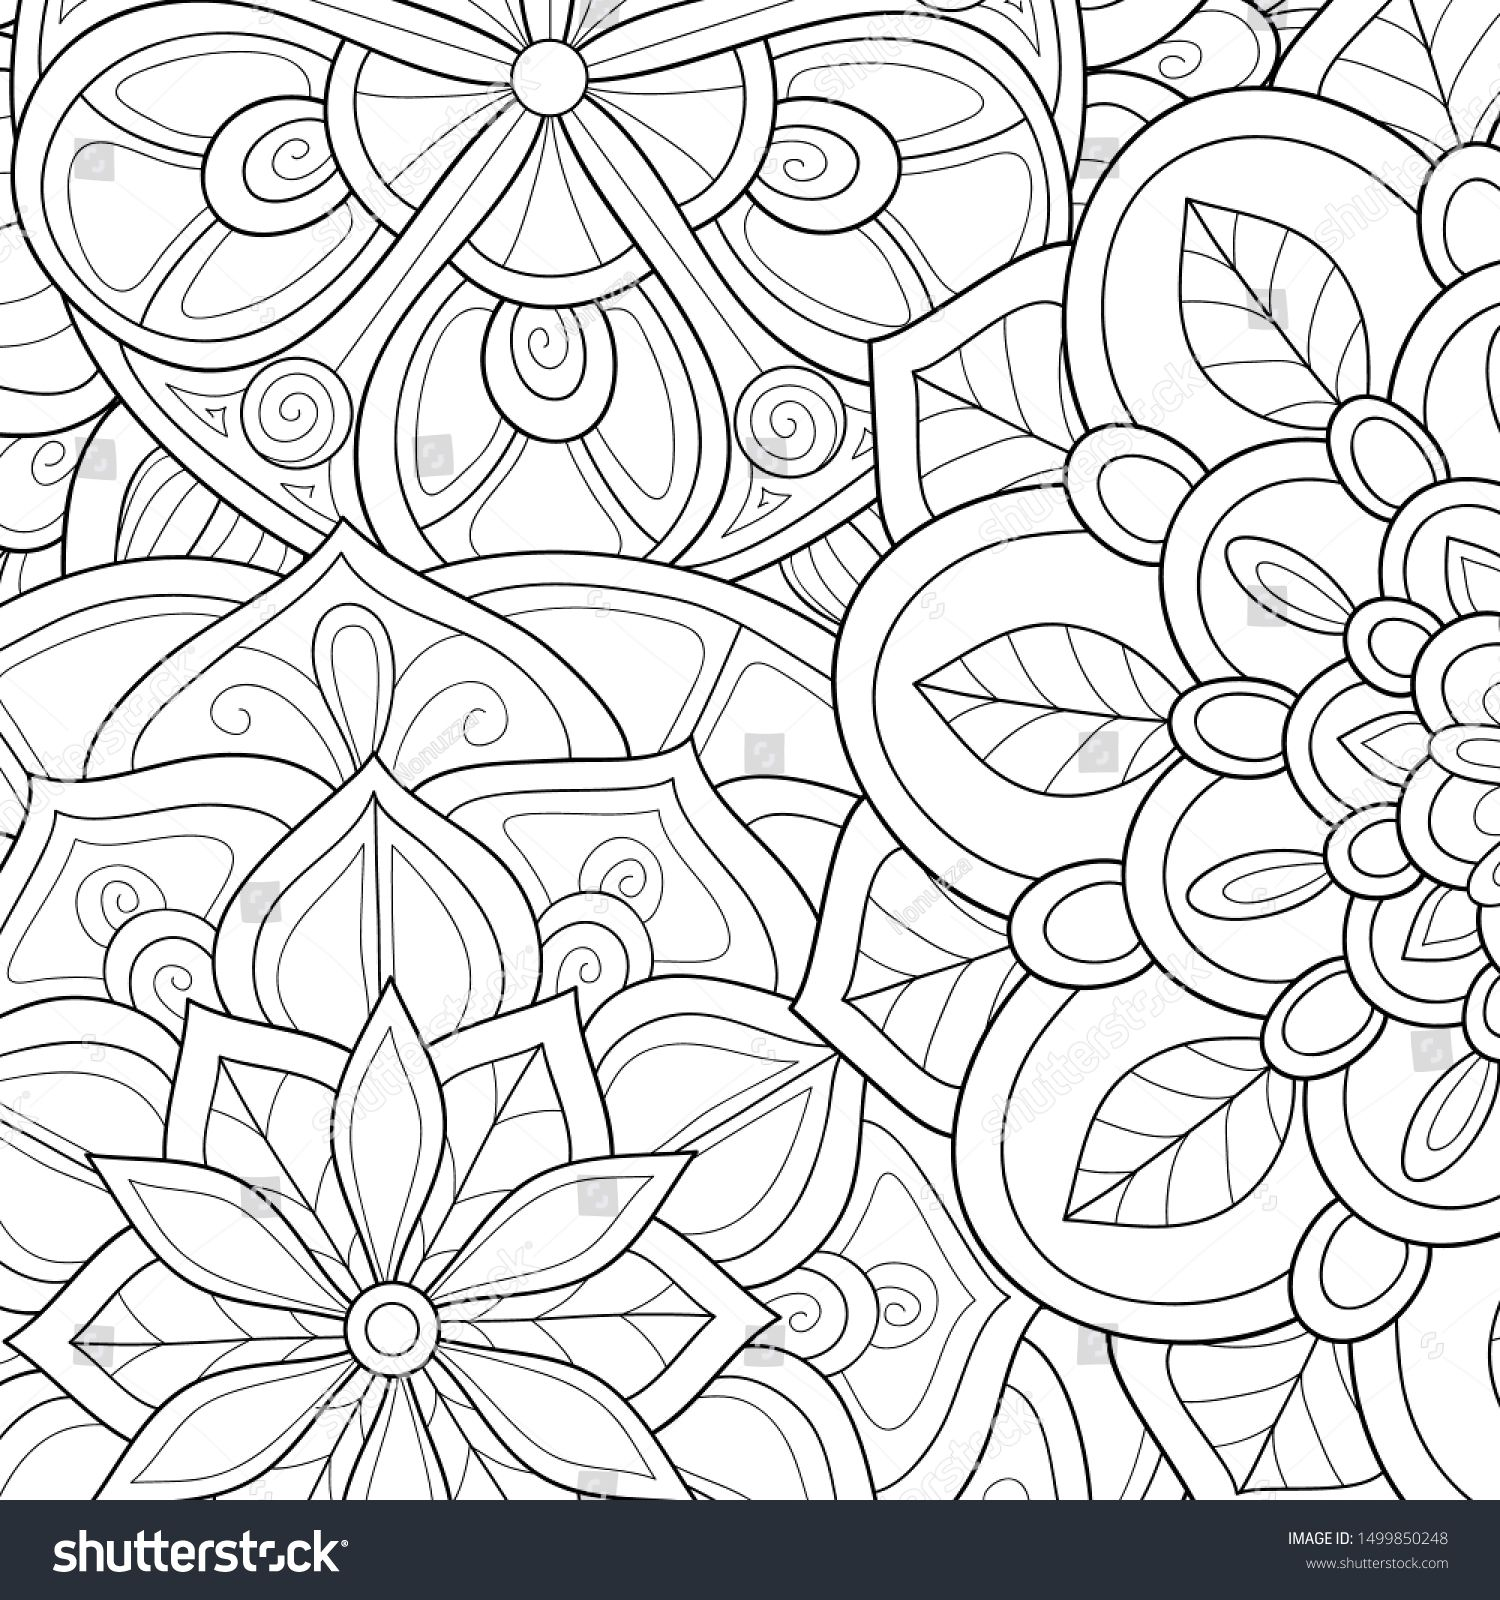 Pin By Amy Jackson On Coloring Pages In 2020 Abstract Floral Abstract Backgrounds Pattern Coloring Pages